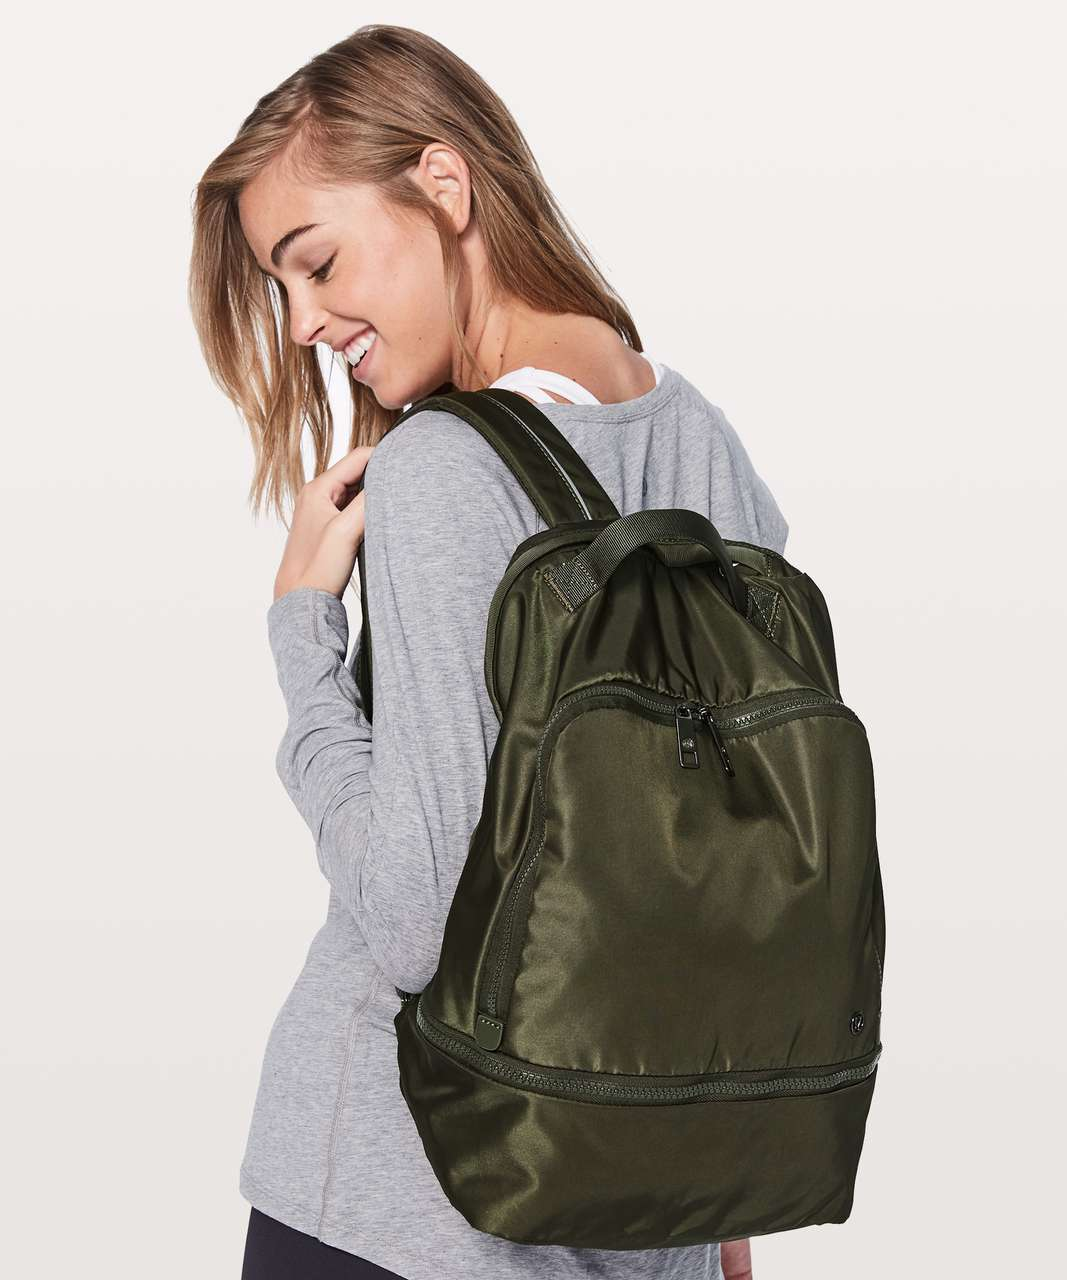 1dbb85b31b Lululemon City Adventurer Backpack  17L - Dark Olive - lulu fanatics